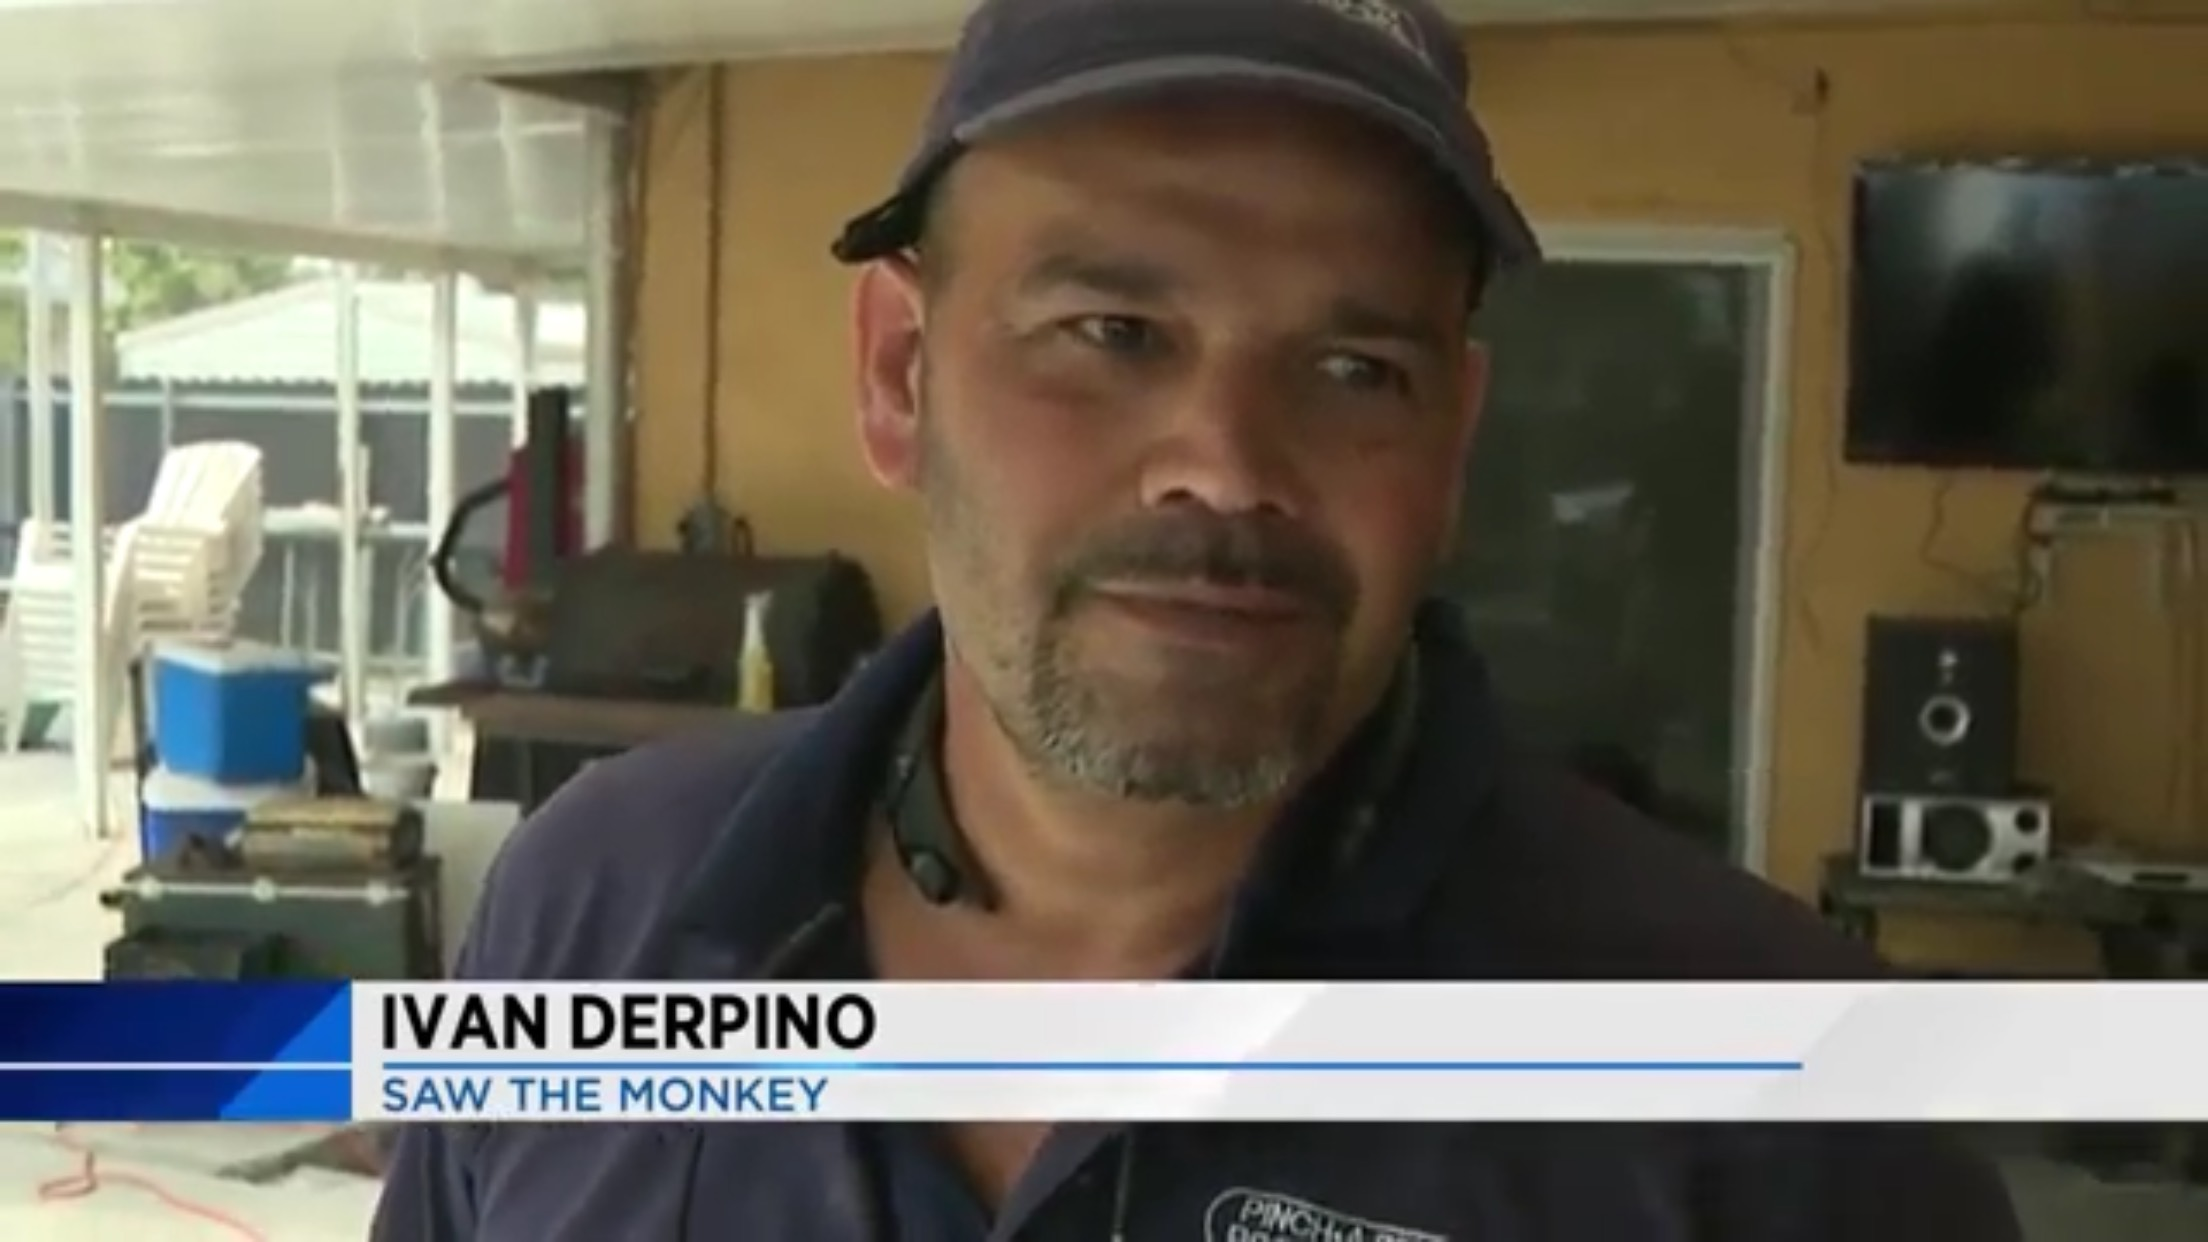 Ivan Derpino: Saw The Monkey